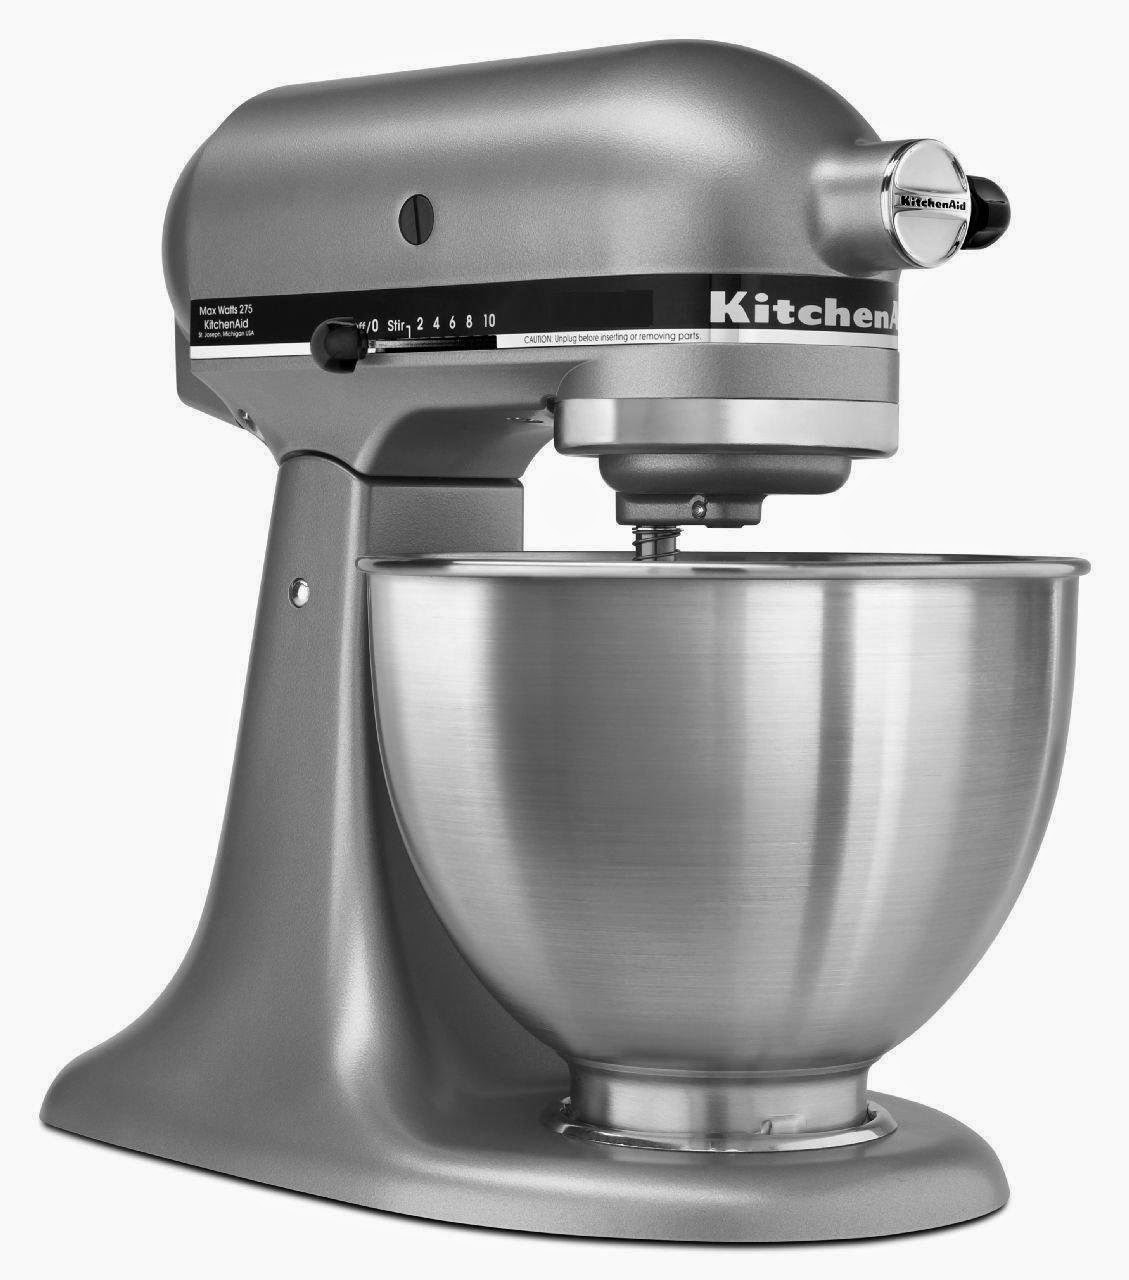 The design of the stand mixer is a trademark in the U.S. and elsewhere. This online merchant is located in the United States at Benson Rd, Benton Harbor, MI MSRP is the Manufacturer's Suggested Retail Price, which may differ from actual selling prices in your area.